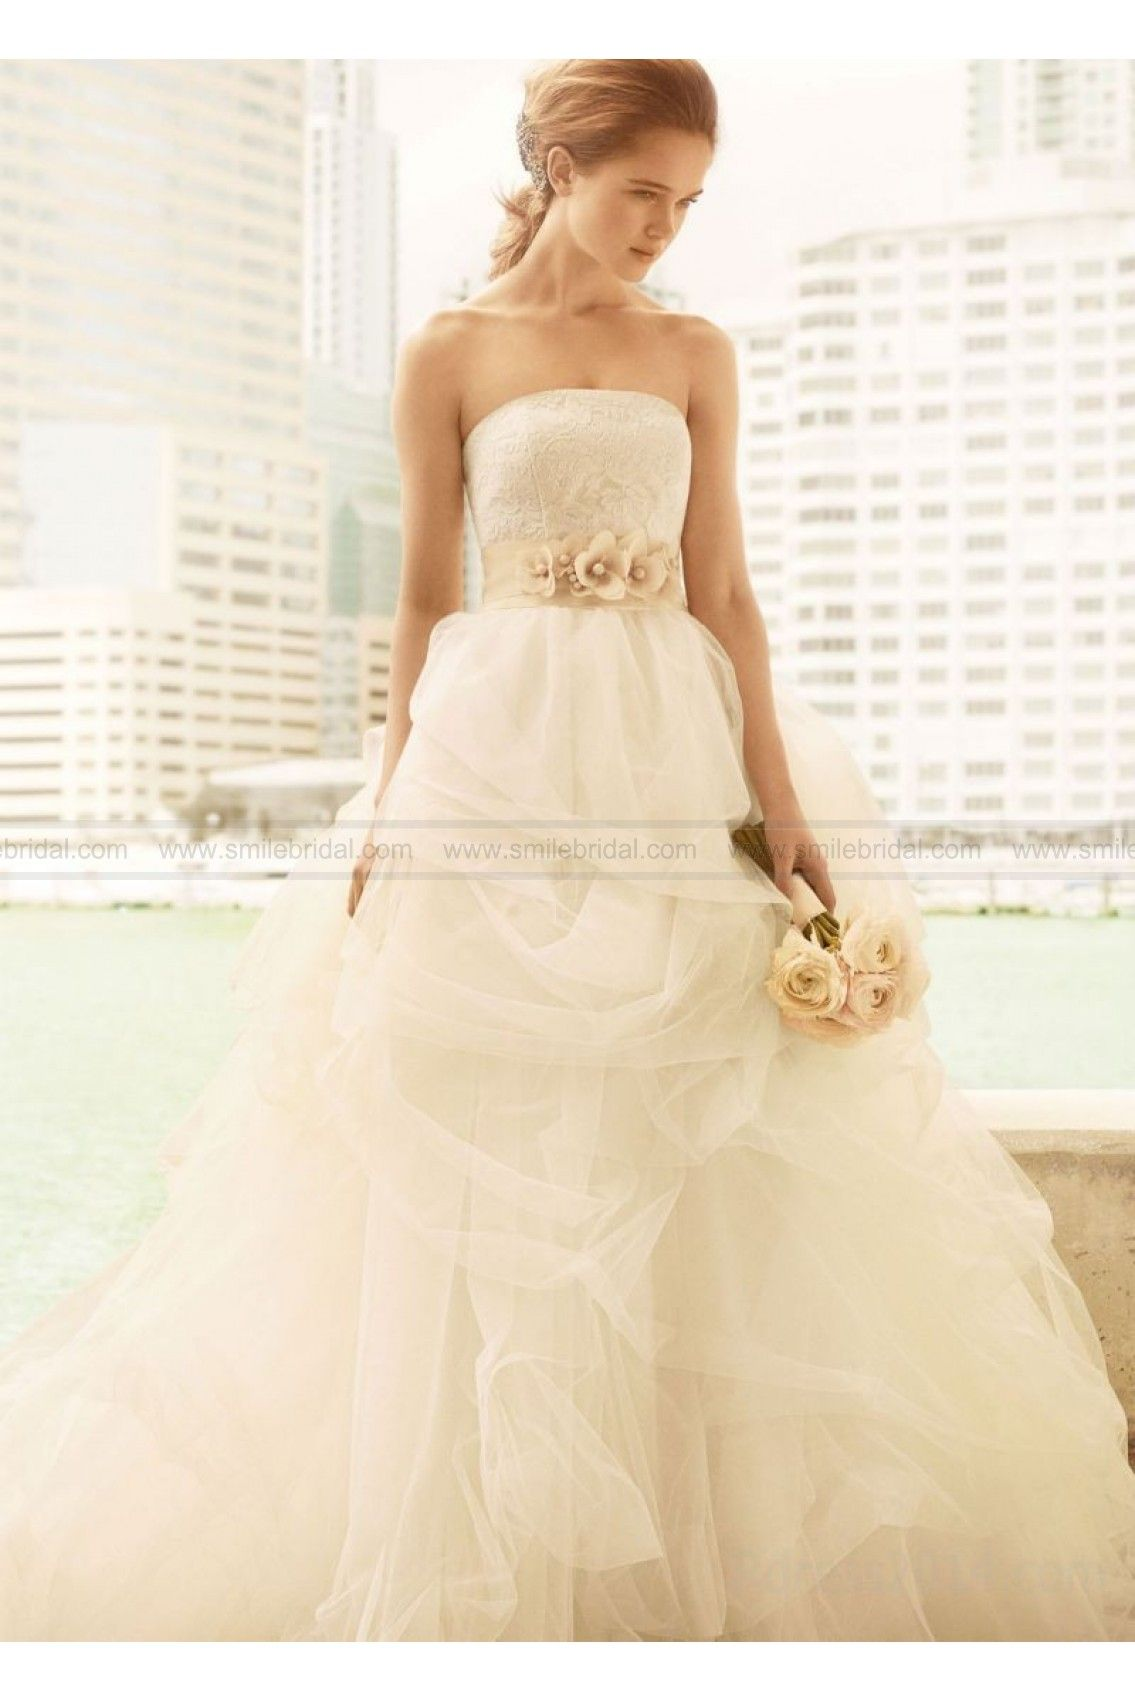 White By Vera Wang Ball Gown With Corded Lace Bodice And Tulle Skirt ...